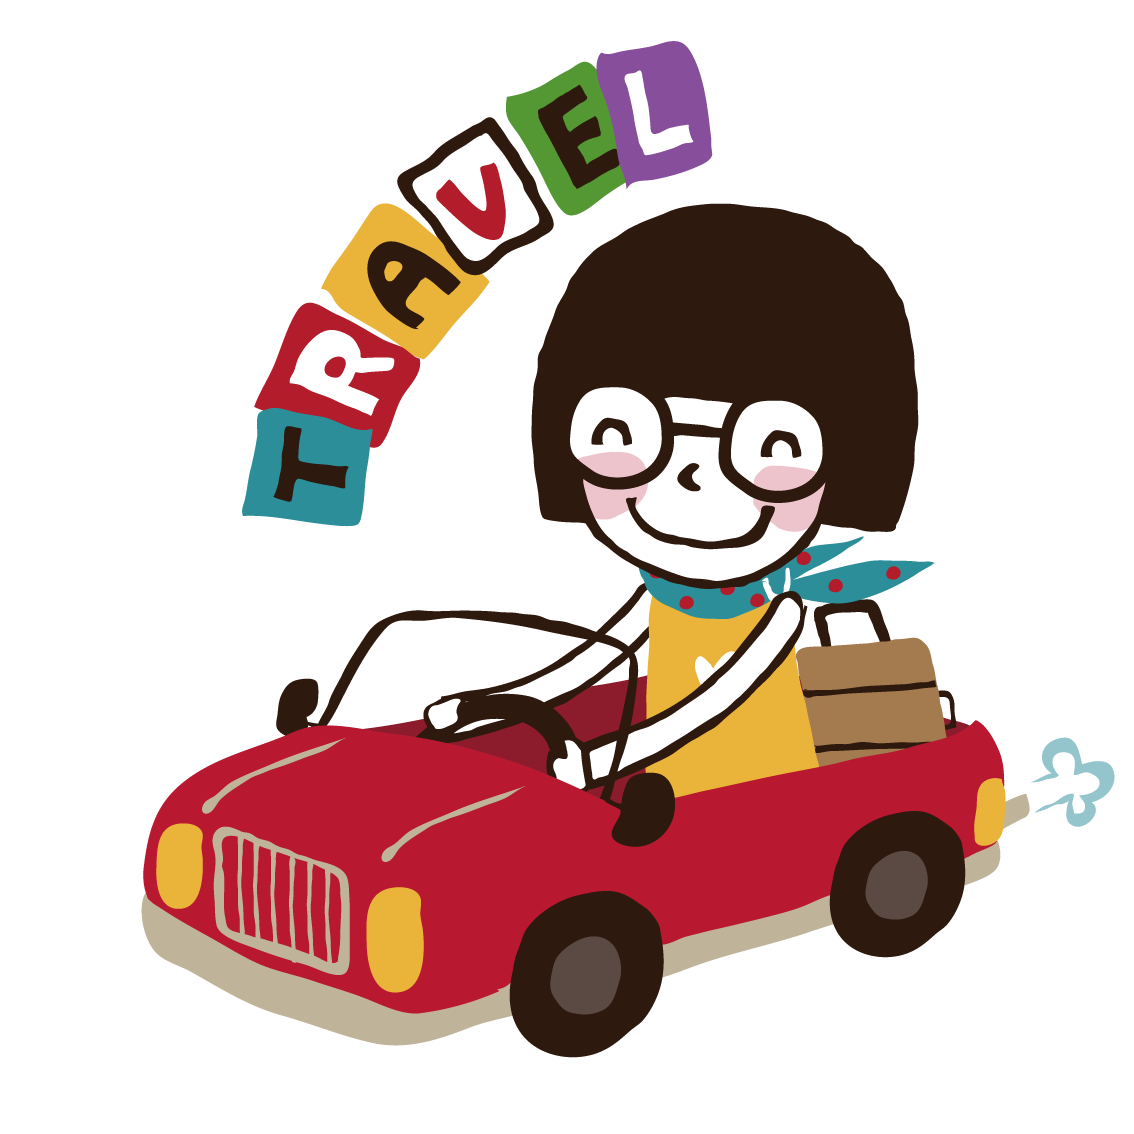 Clipart of girl driving car picture freeuse South Korea Girl Travel Car Illustration - The little girl driving ... picture freeuse